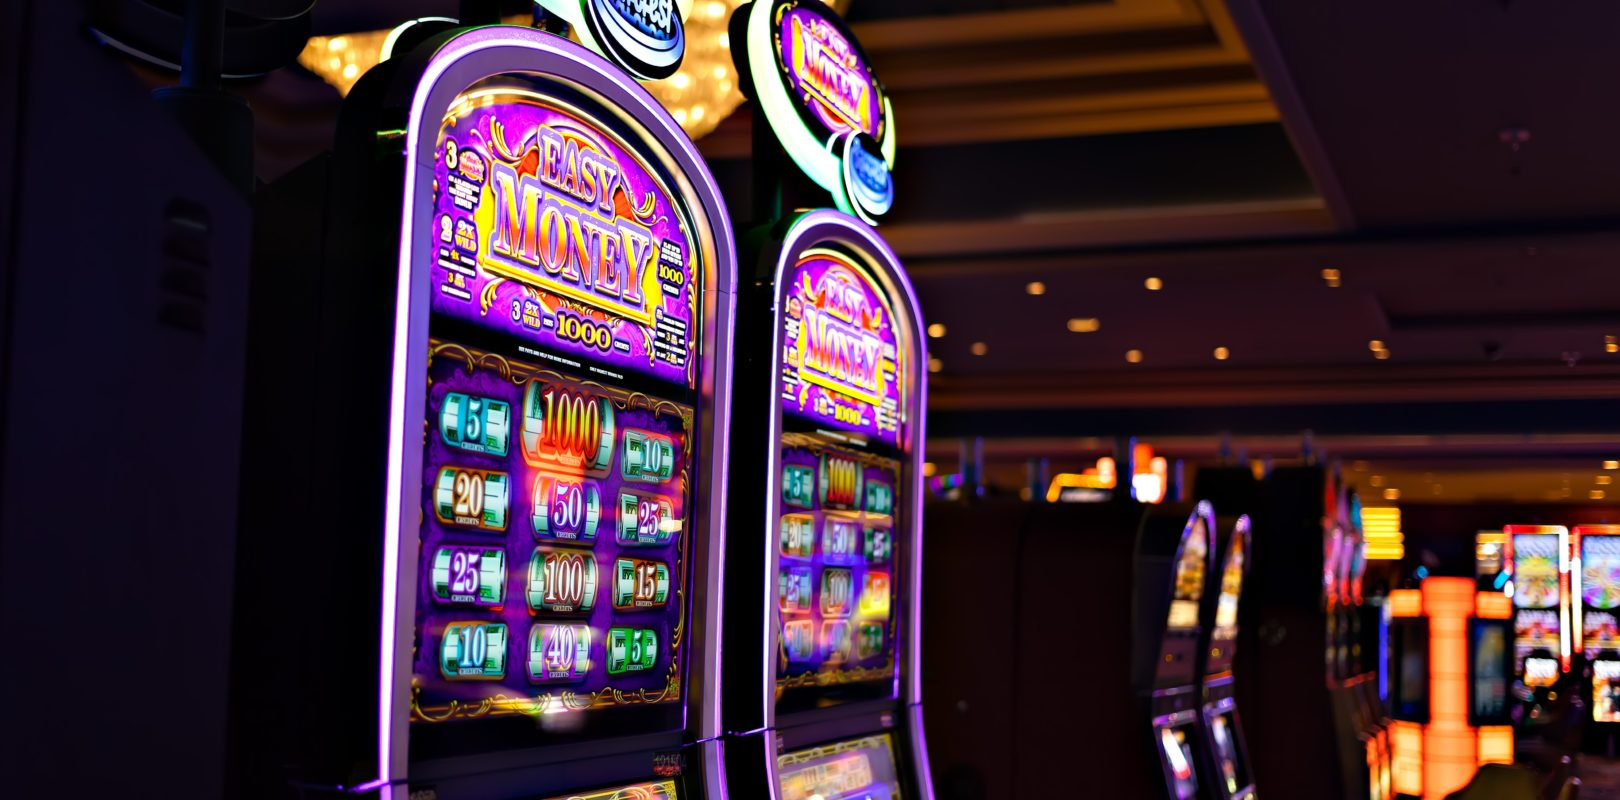 How To Be Happy Gambling But Not